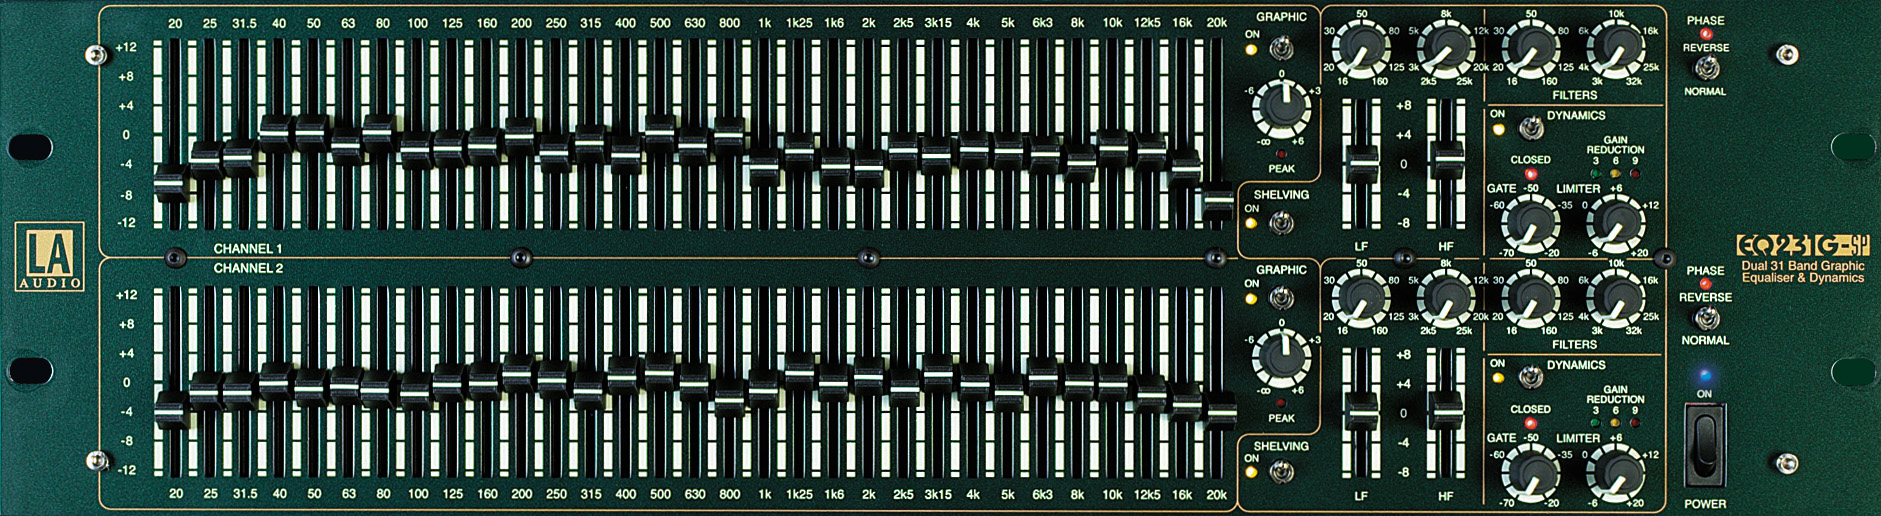 Band Graphic Equalizer Circuit As Well 4 Band Equalizer Schematic In